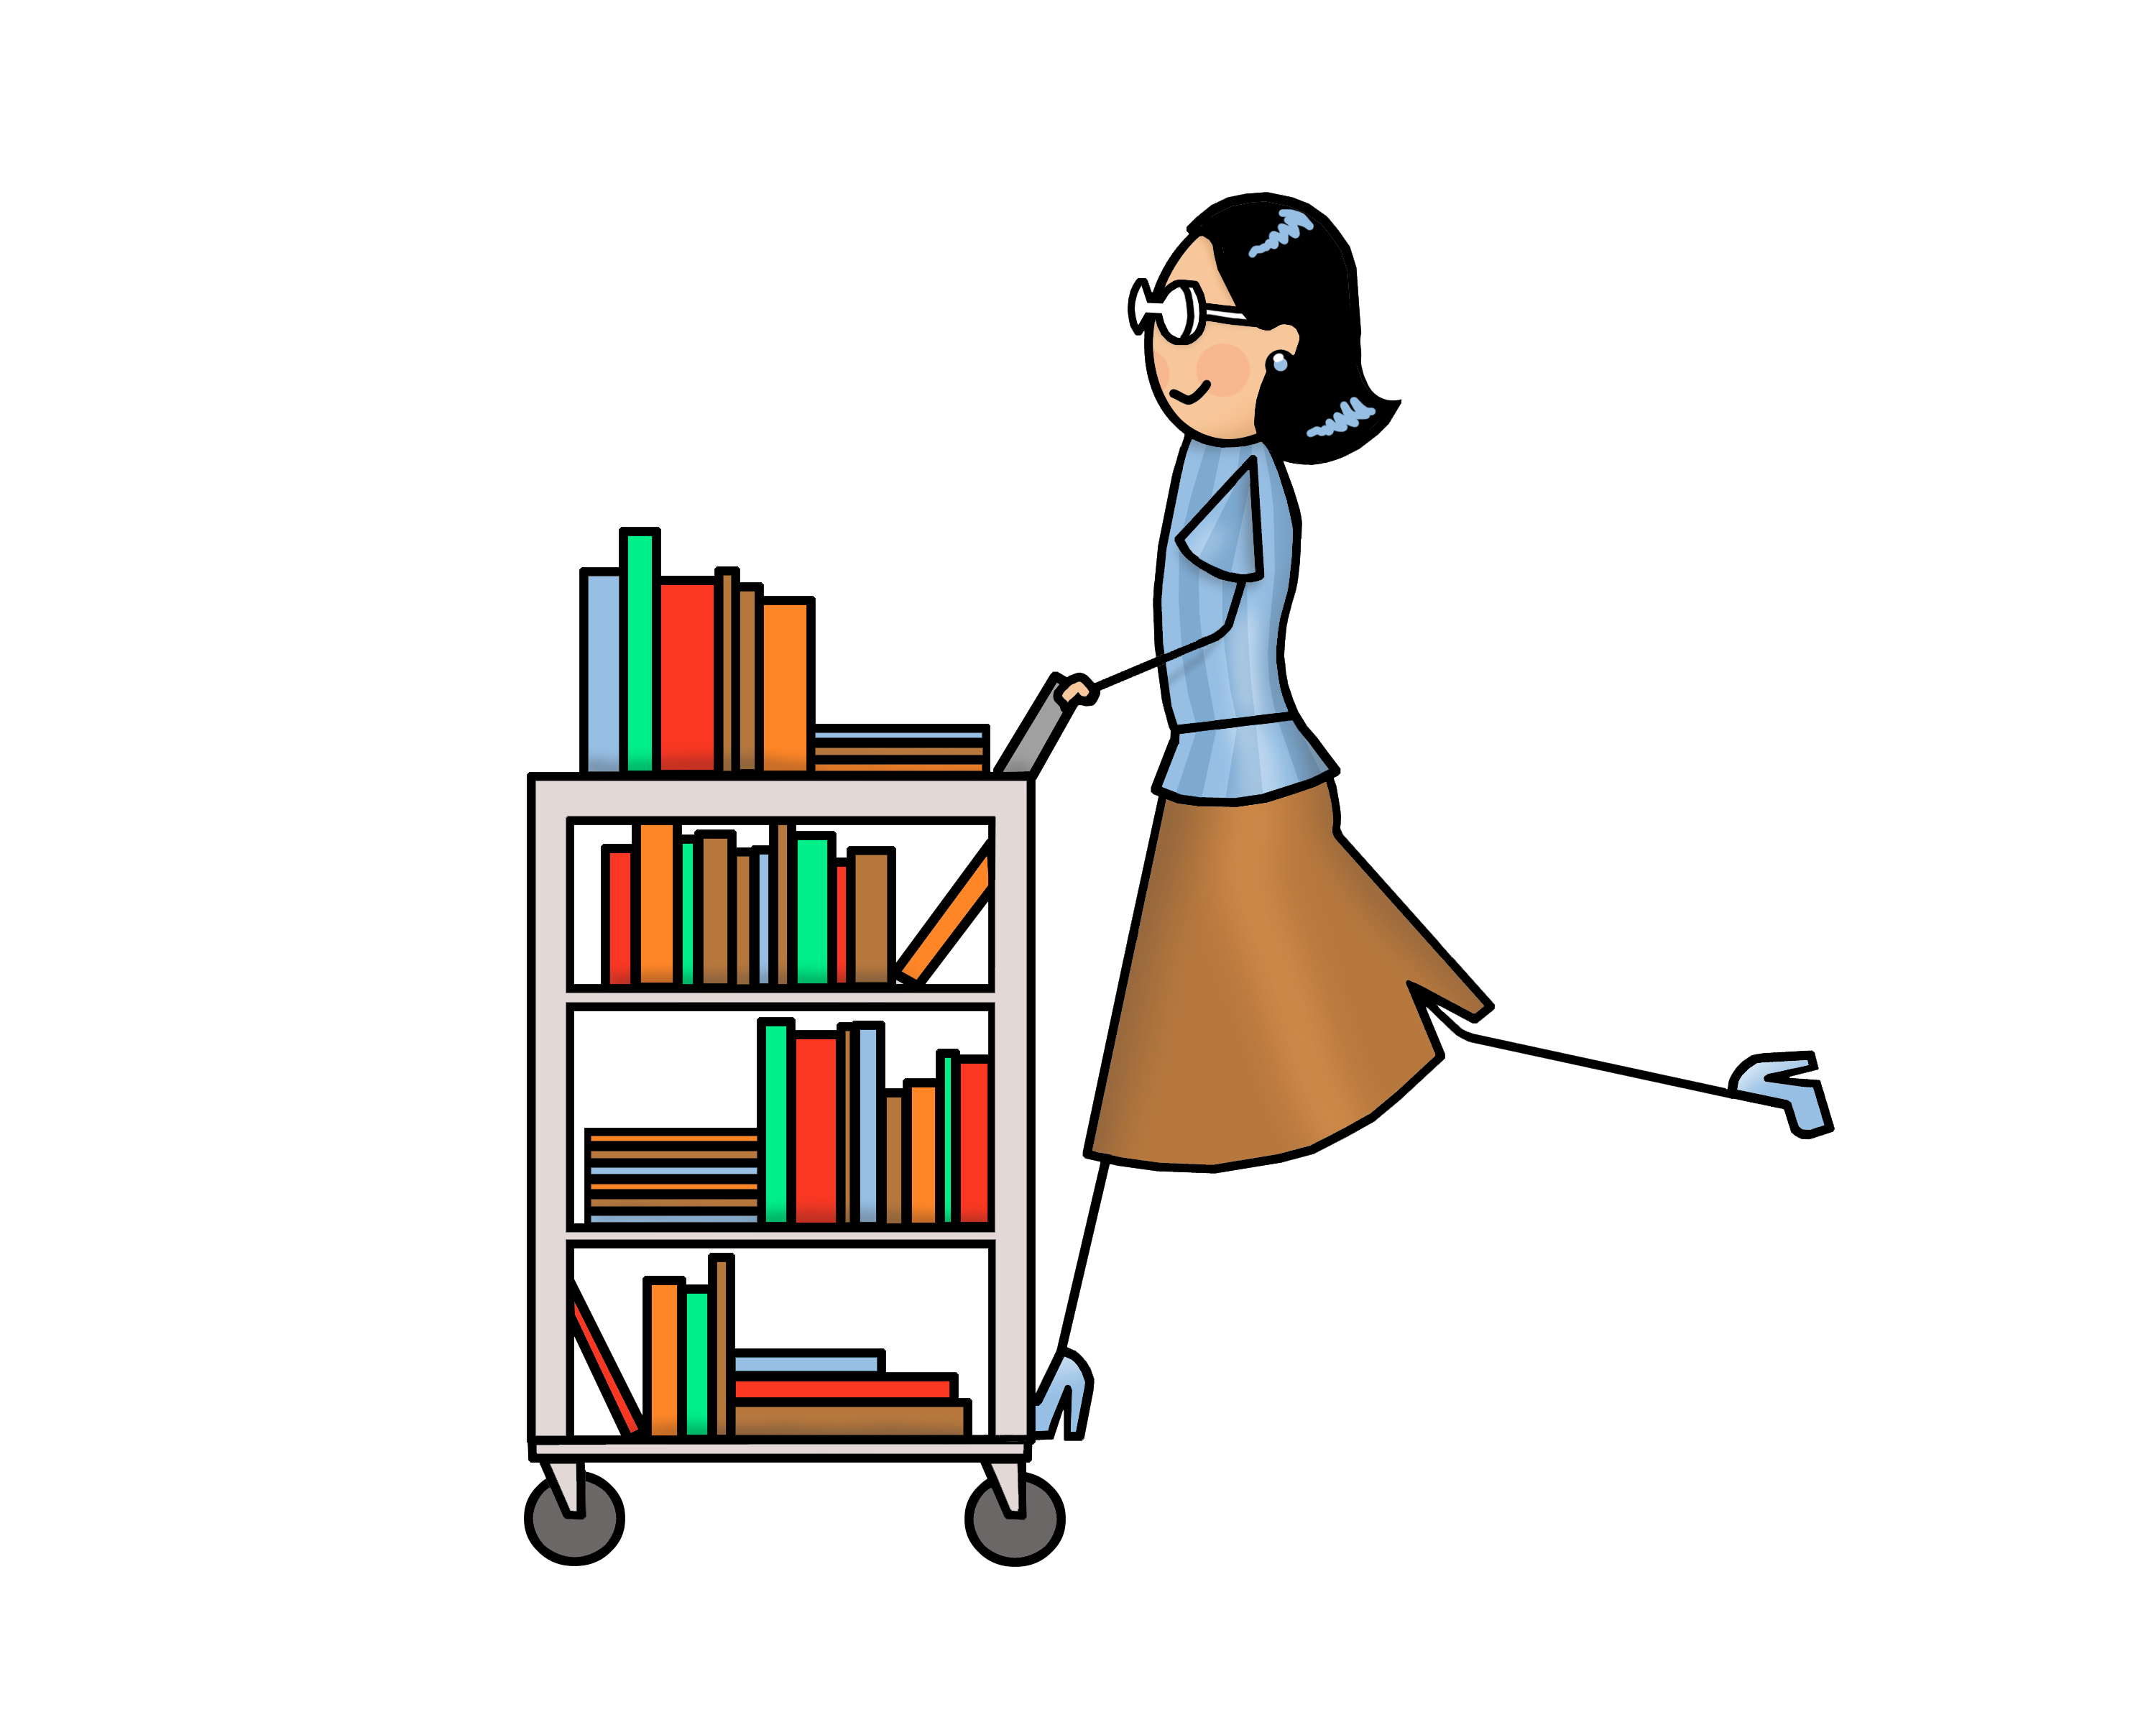 Please return all Library Books this week!